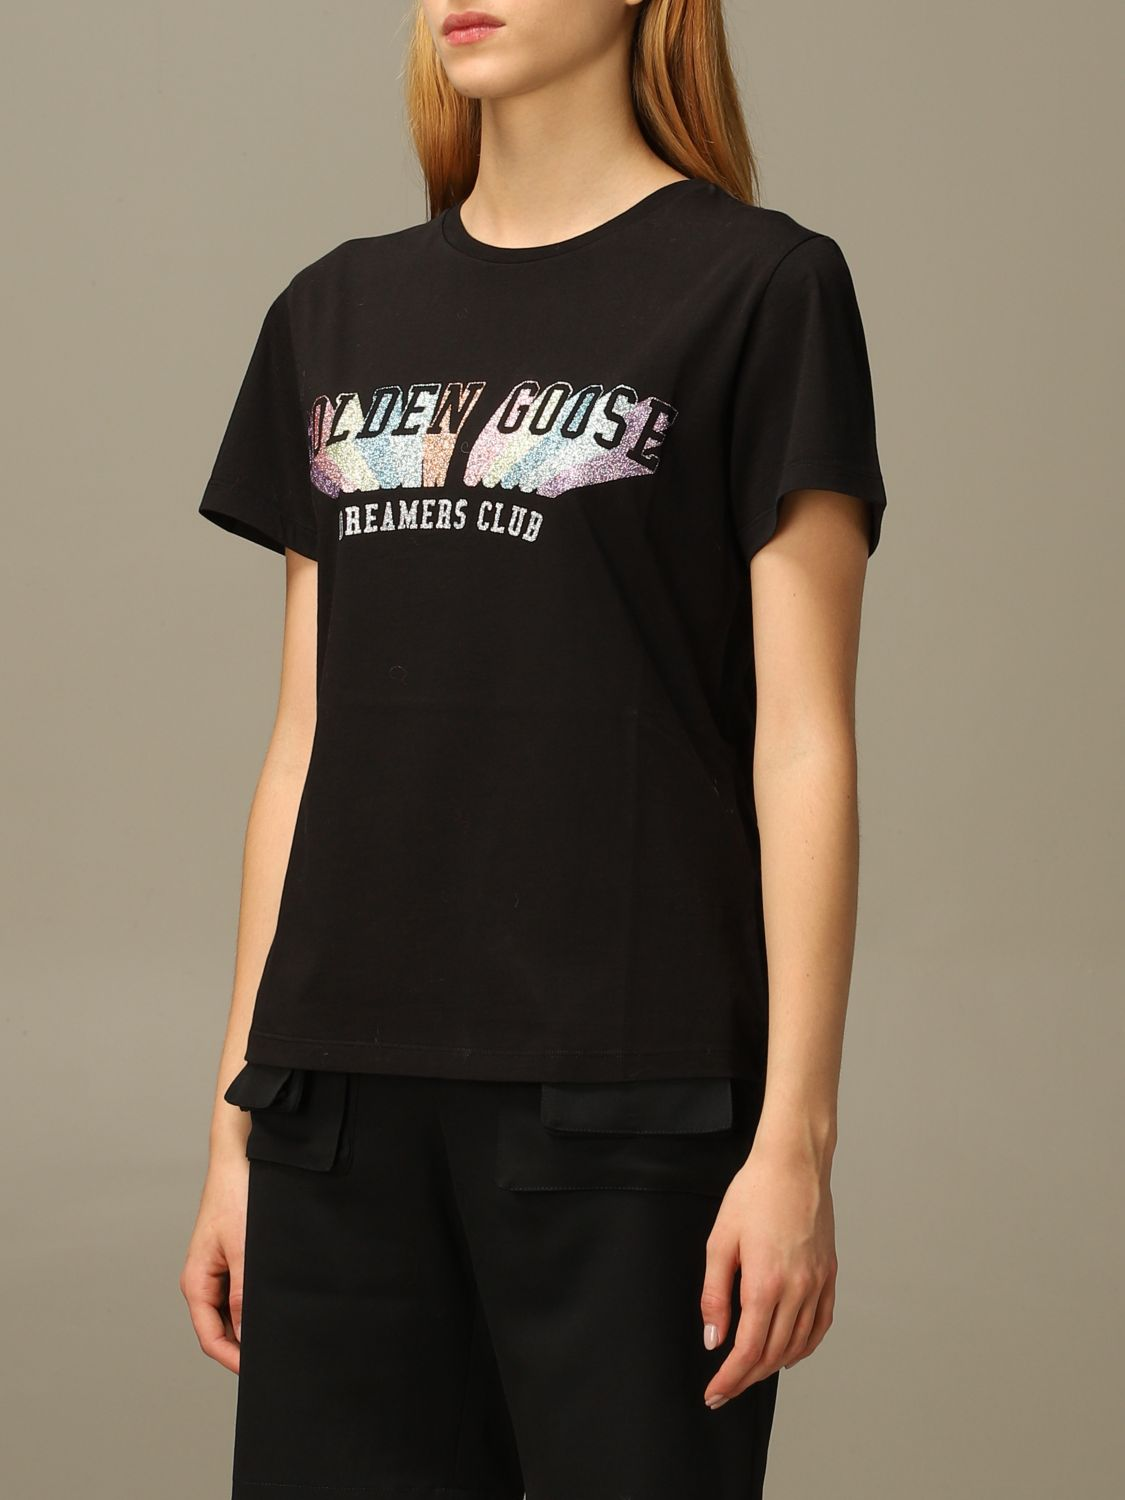 T-Shirt Golden Goose: T-shirt damen Golden Goose schwarz 4